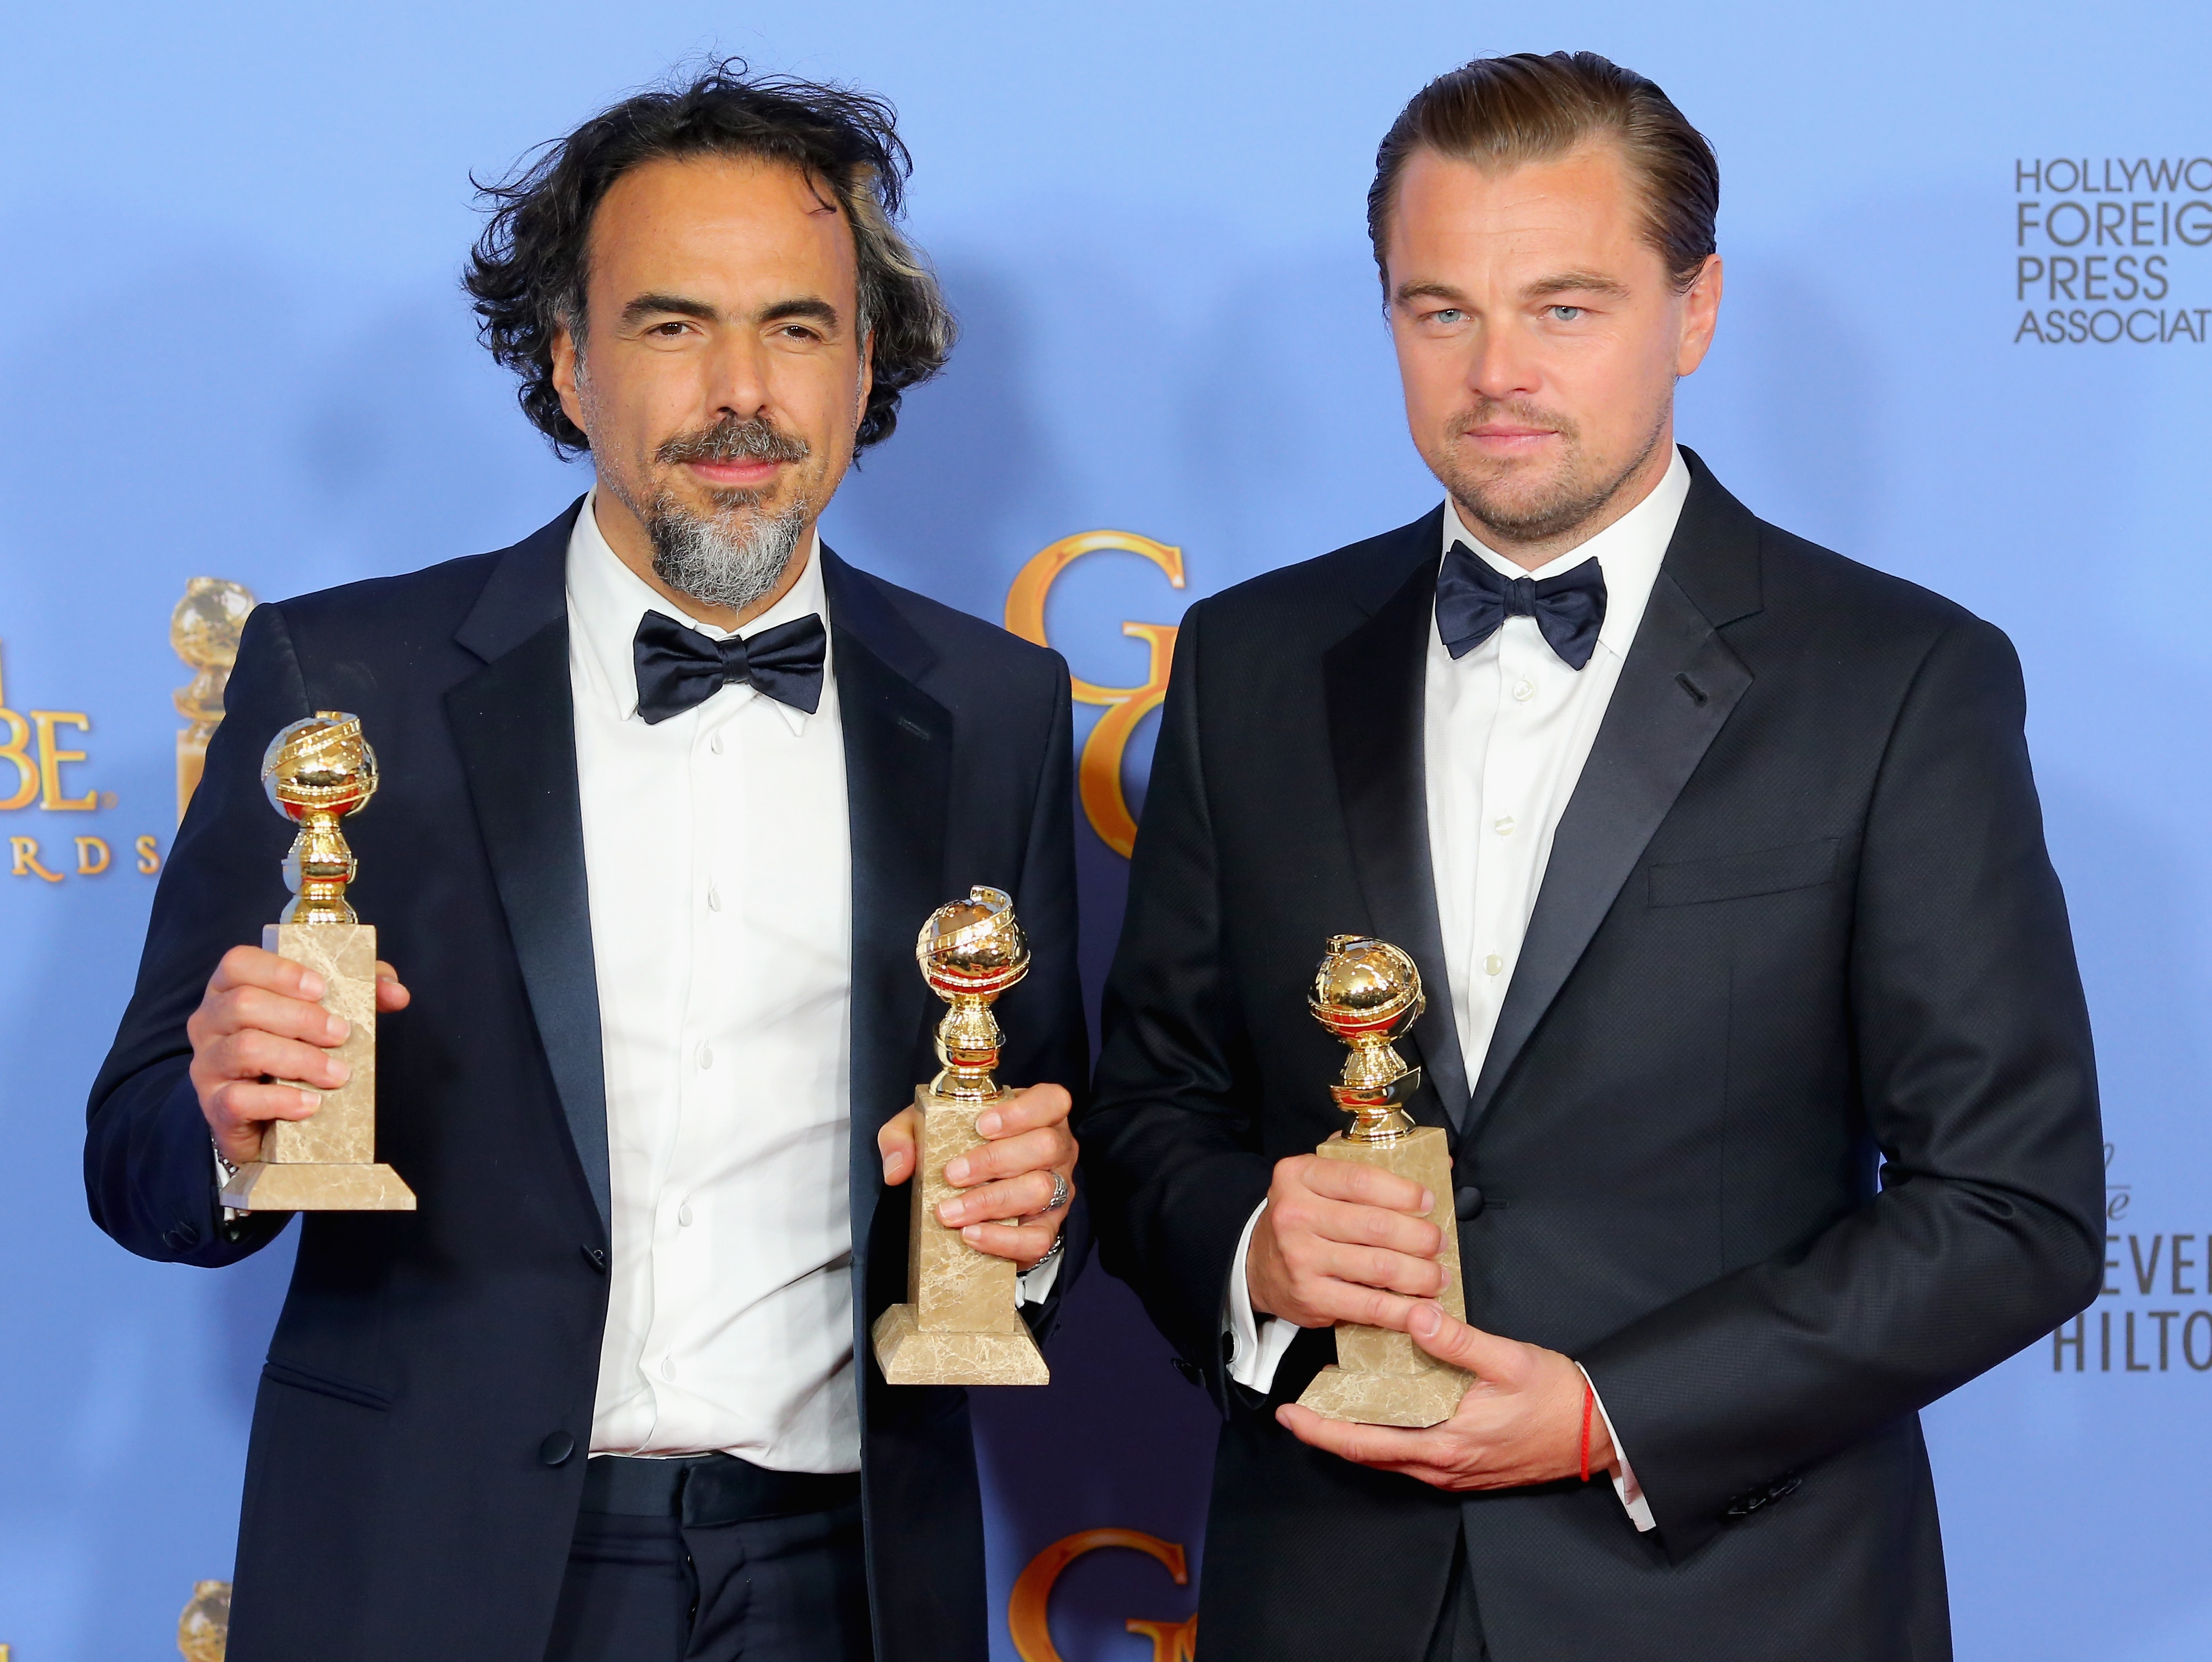 BEVERLY HILLS, CA - JANUARY 10:  Director Alejandro Gonzalez Inarritu (L), winner of Best Motion Picture - Drama and Best Director - Motion Picture for 'The Revenant,' and actor Leonardo DiCaprio, winner of Best Performance by an Actor in a Motion Picture - Drama for 'The Revenant,' poses in the press room during the 73rd Annual Golden Globe Awards held at the Beverly Hilton Hotel on January 10, 2016 in Beverly Hills, California.  (Photo by Mark Davis/Getty Images)